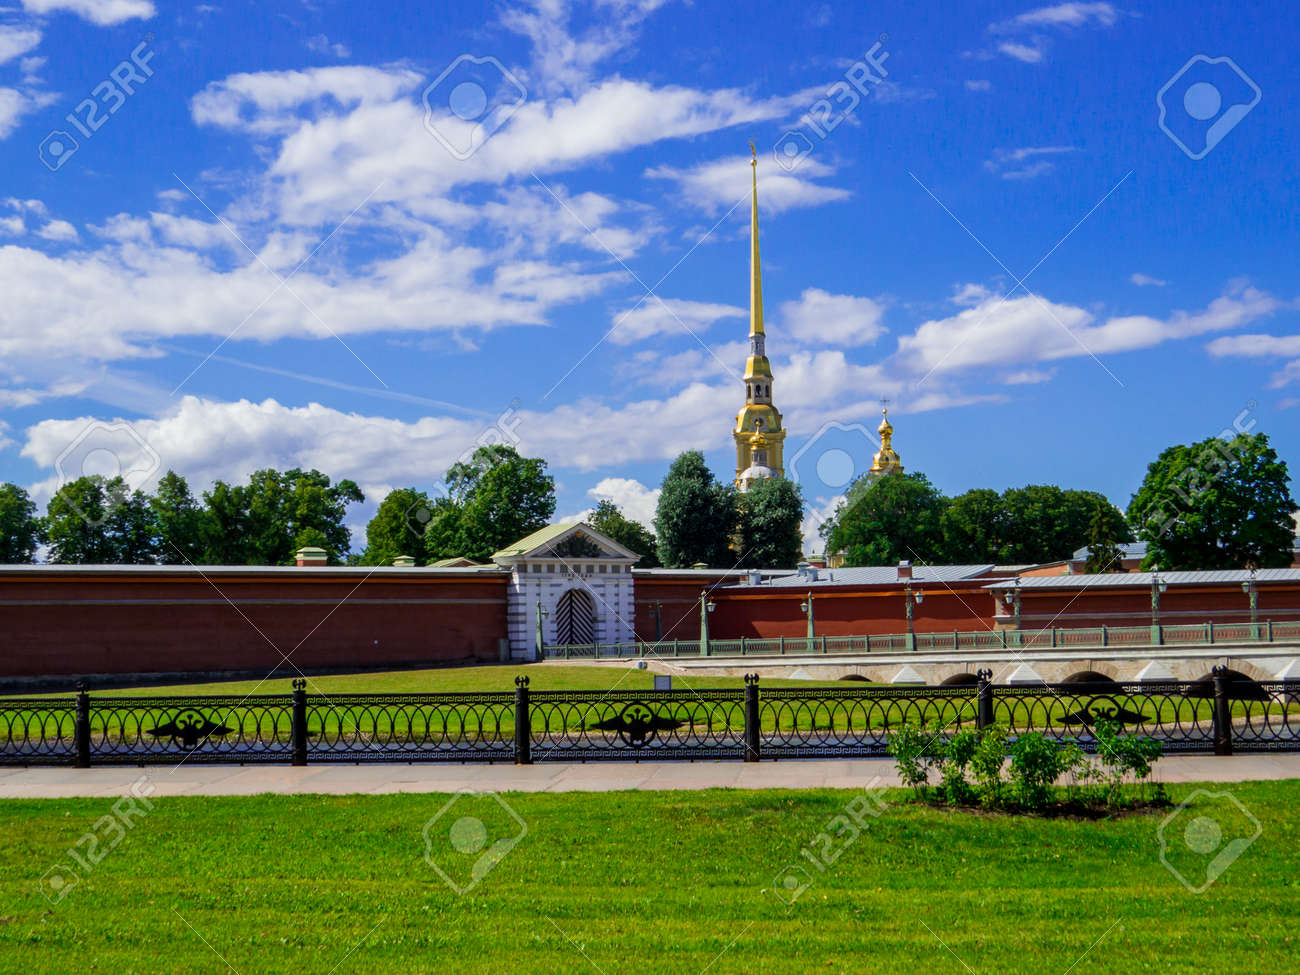 View of the Peter and Paul Fortress in St. Petersburg, Russia - 159692378